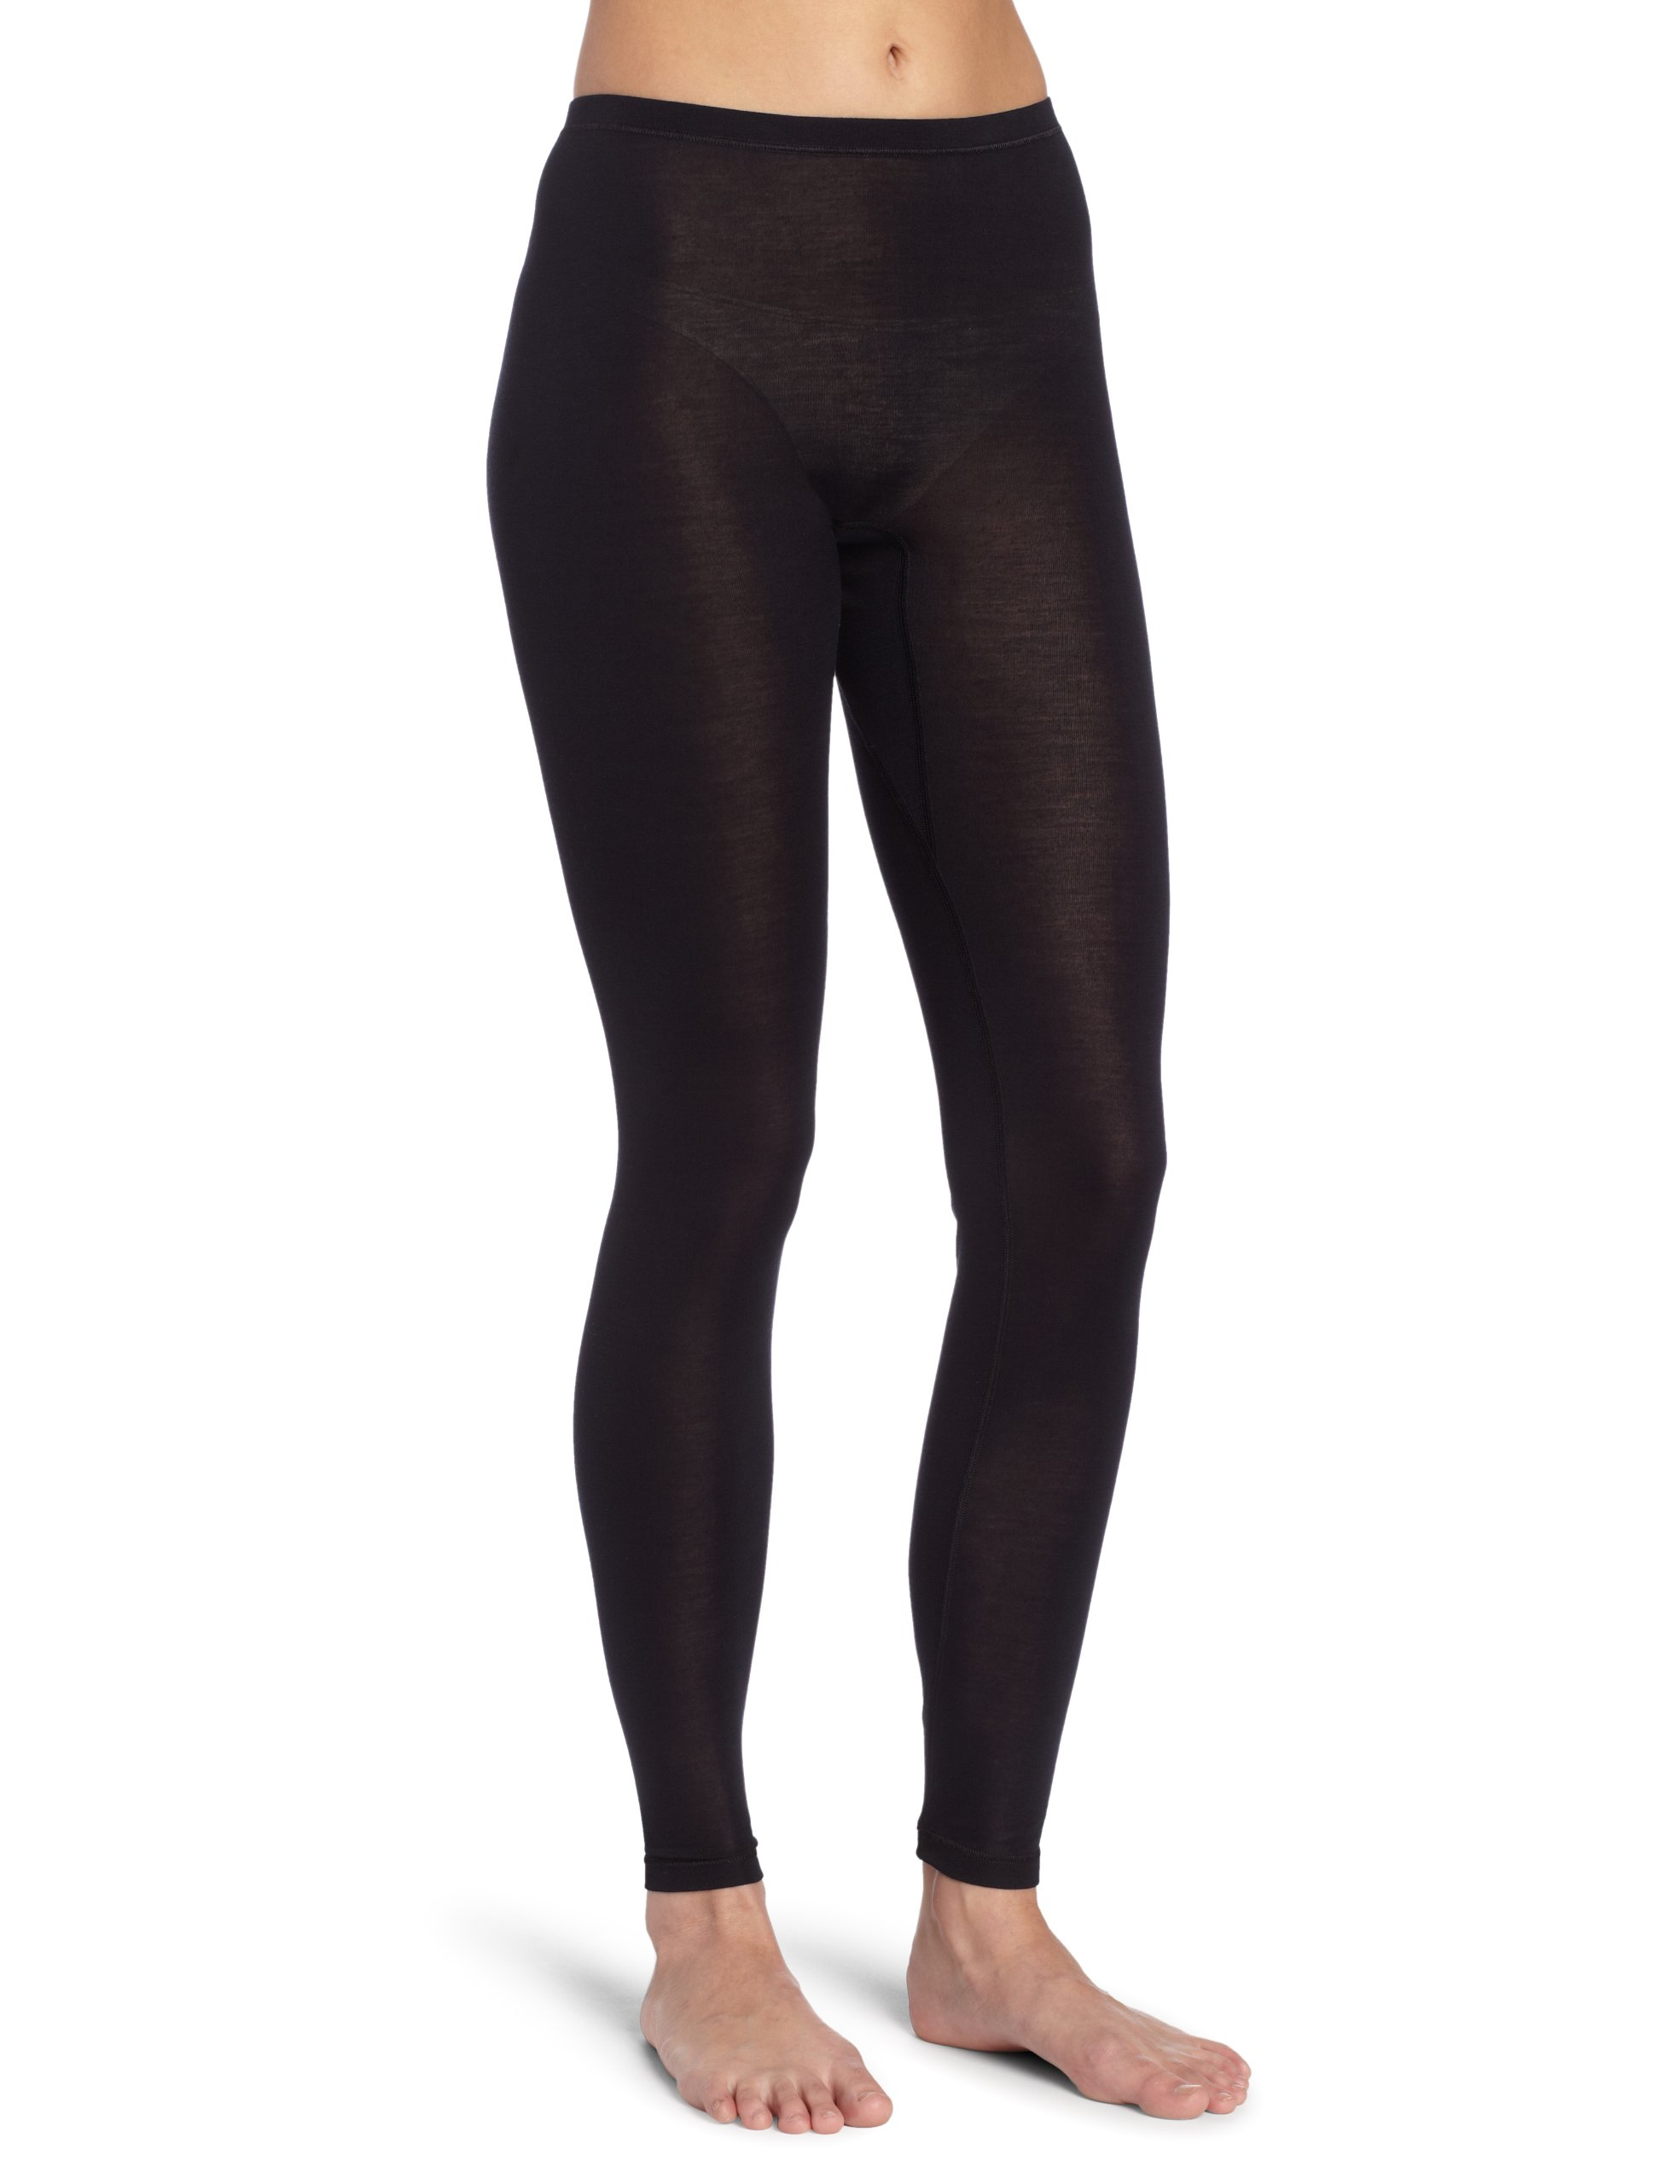 Hanro Women's Pure Silk Leggings, Black, X-Small